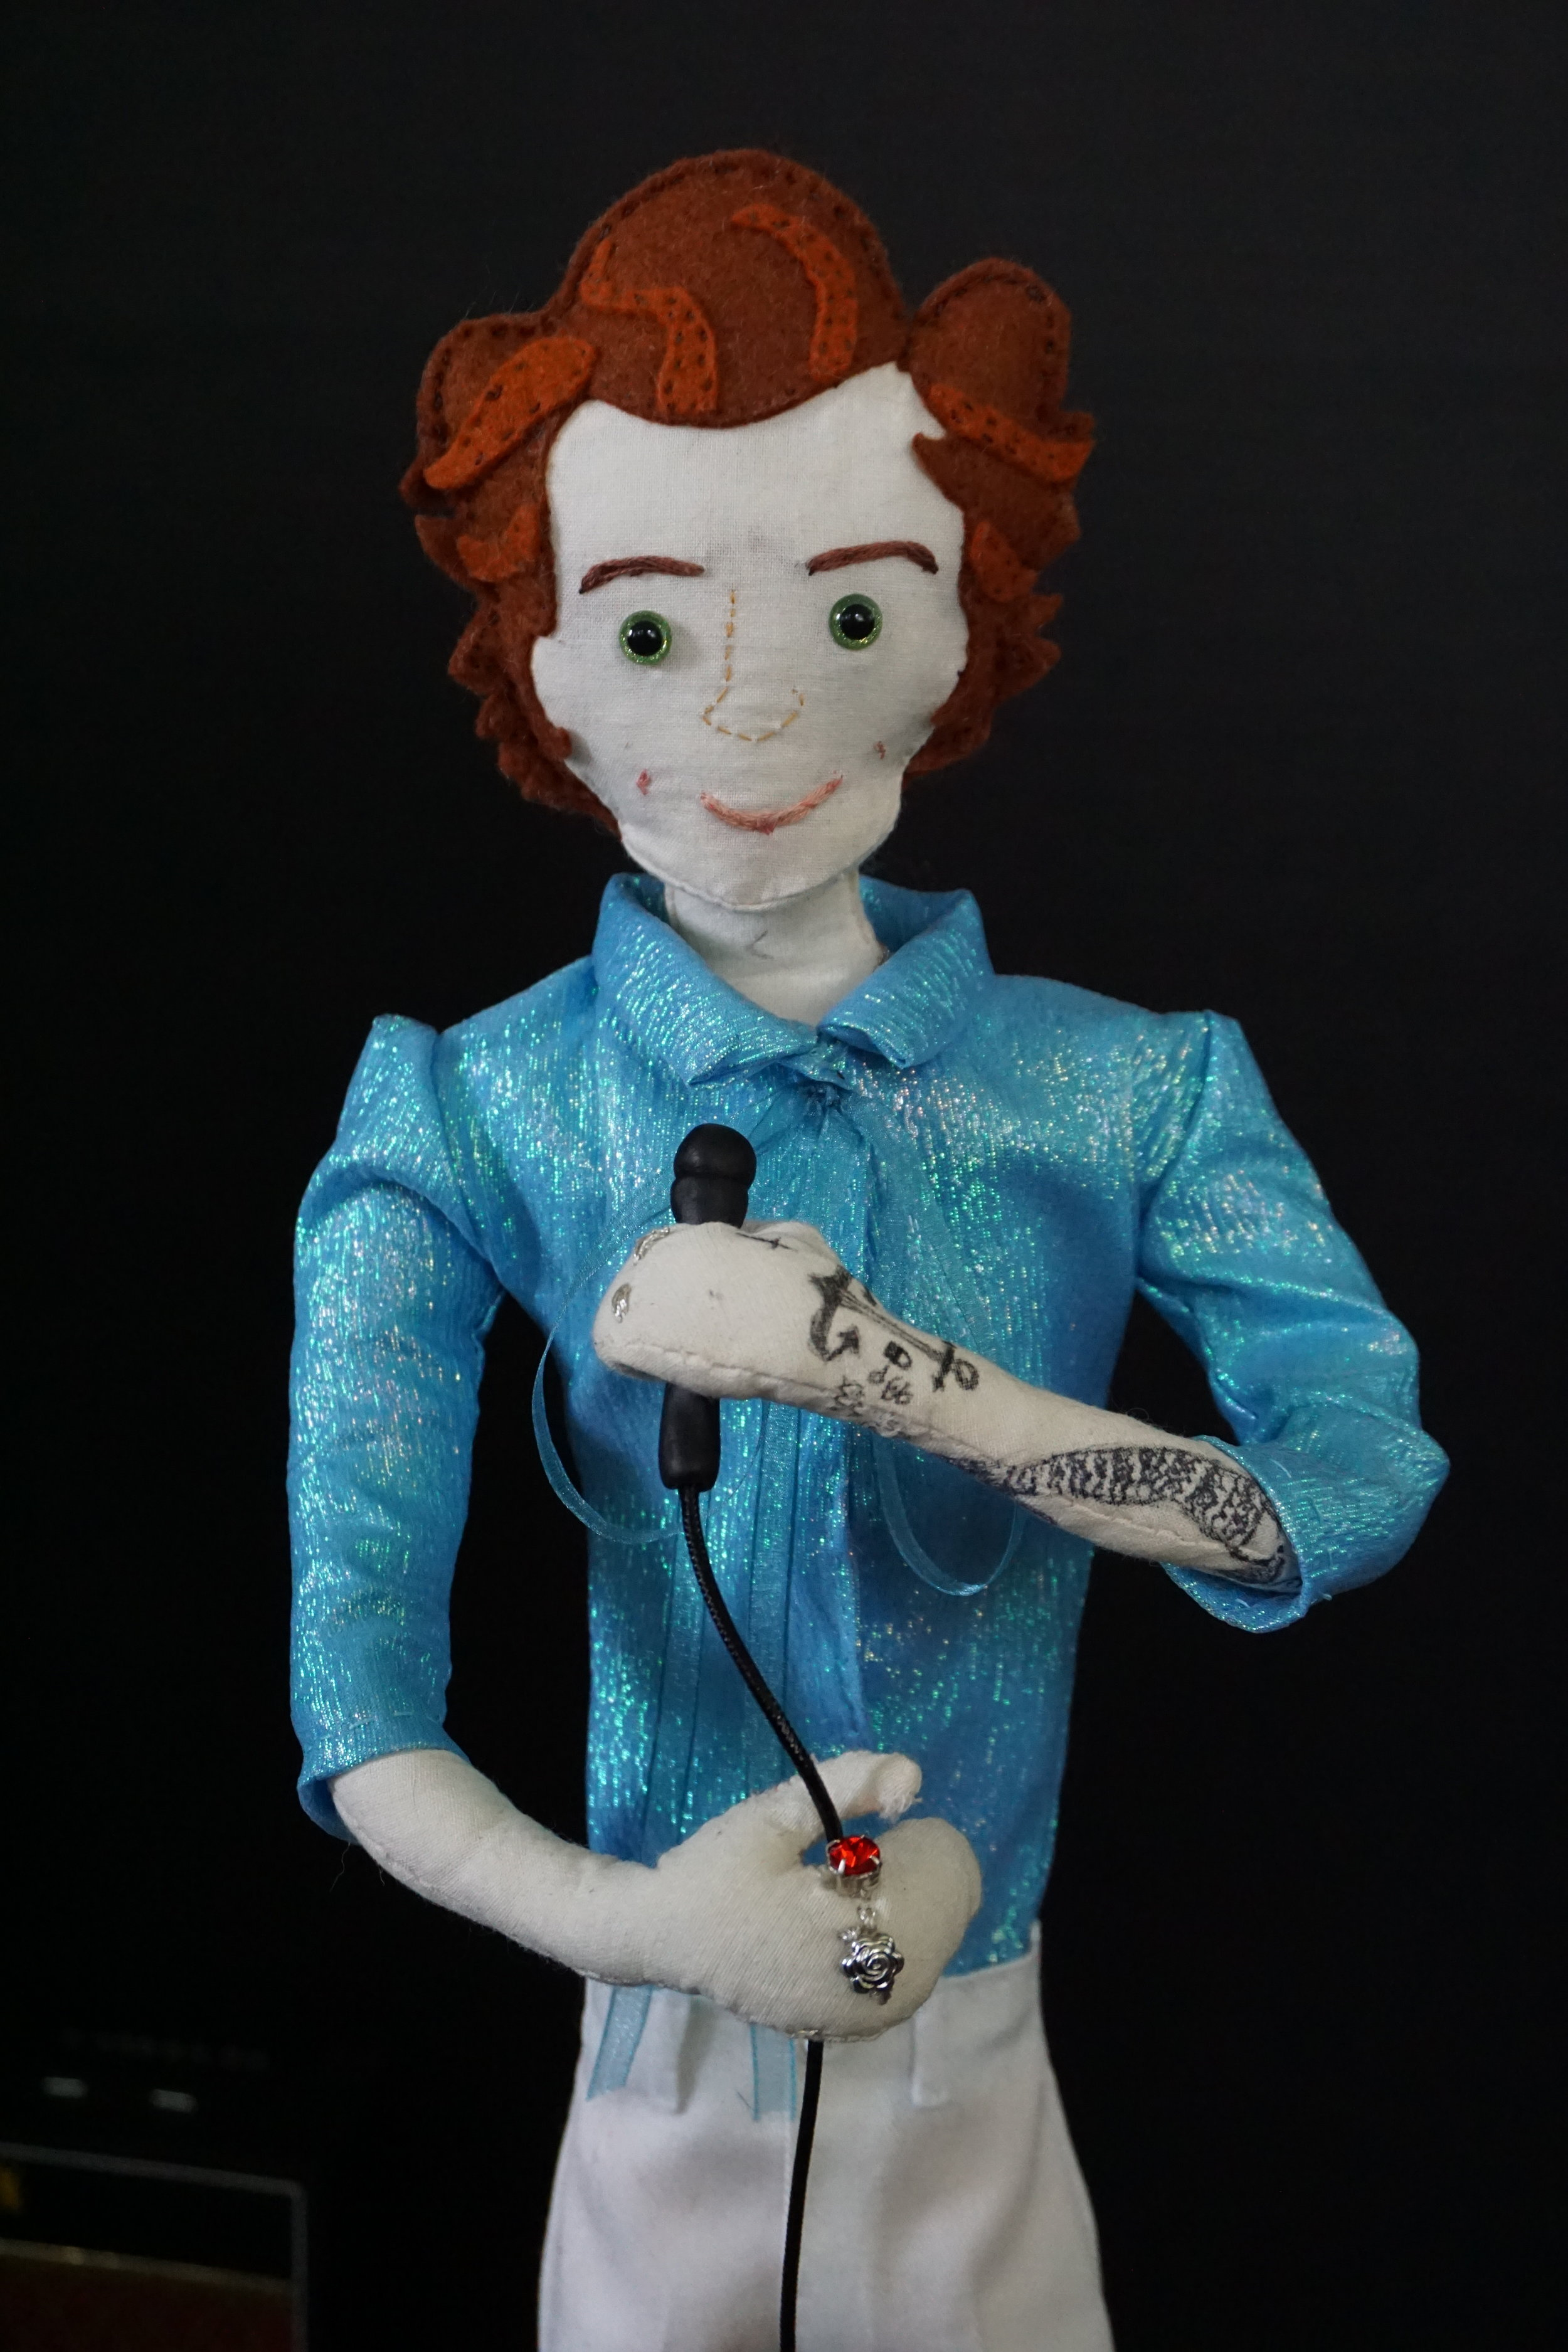 Harrydoll of Harry Styles